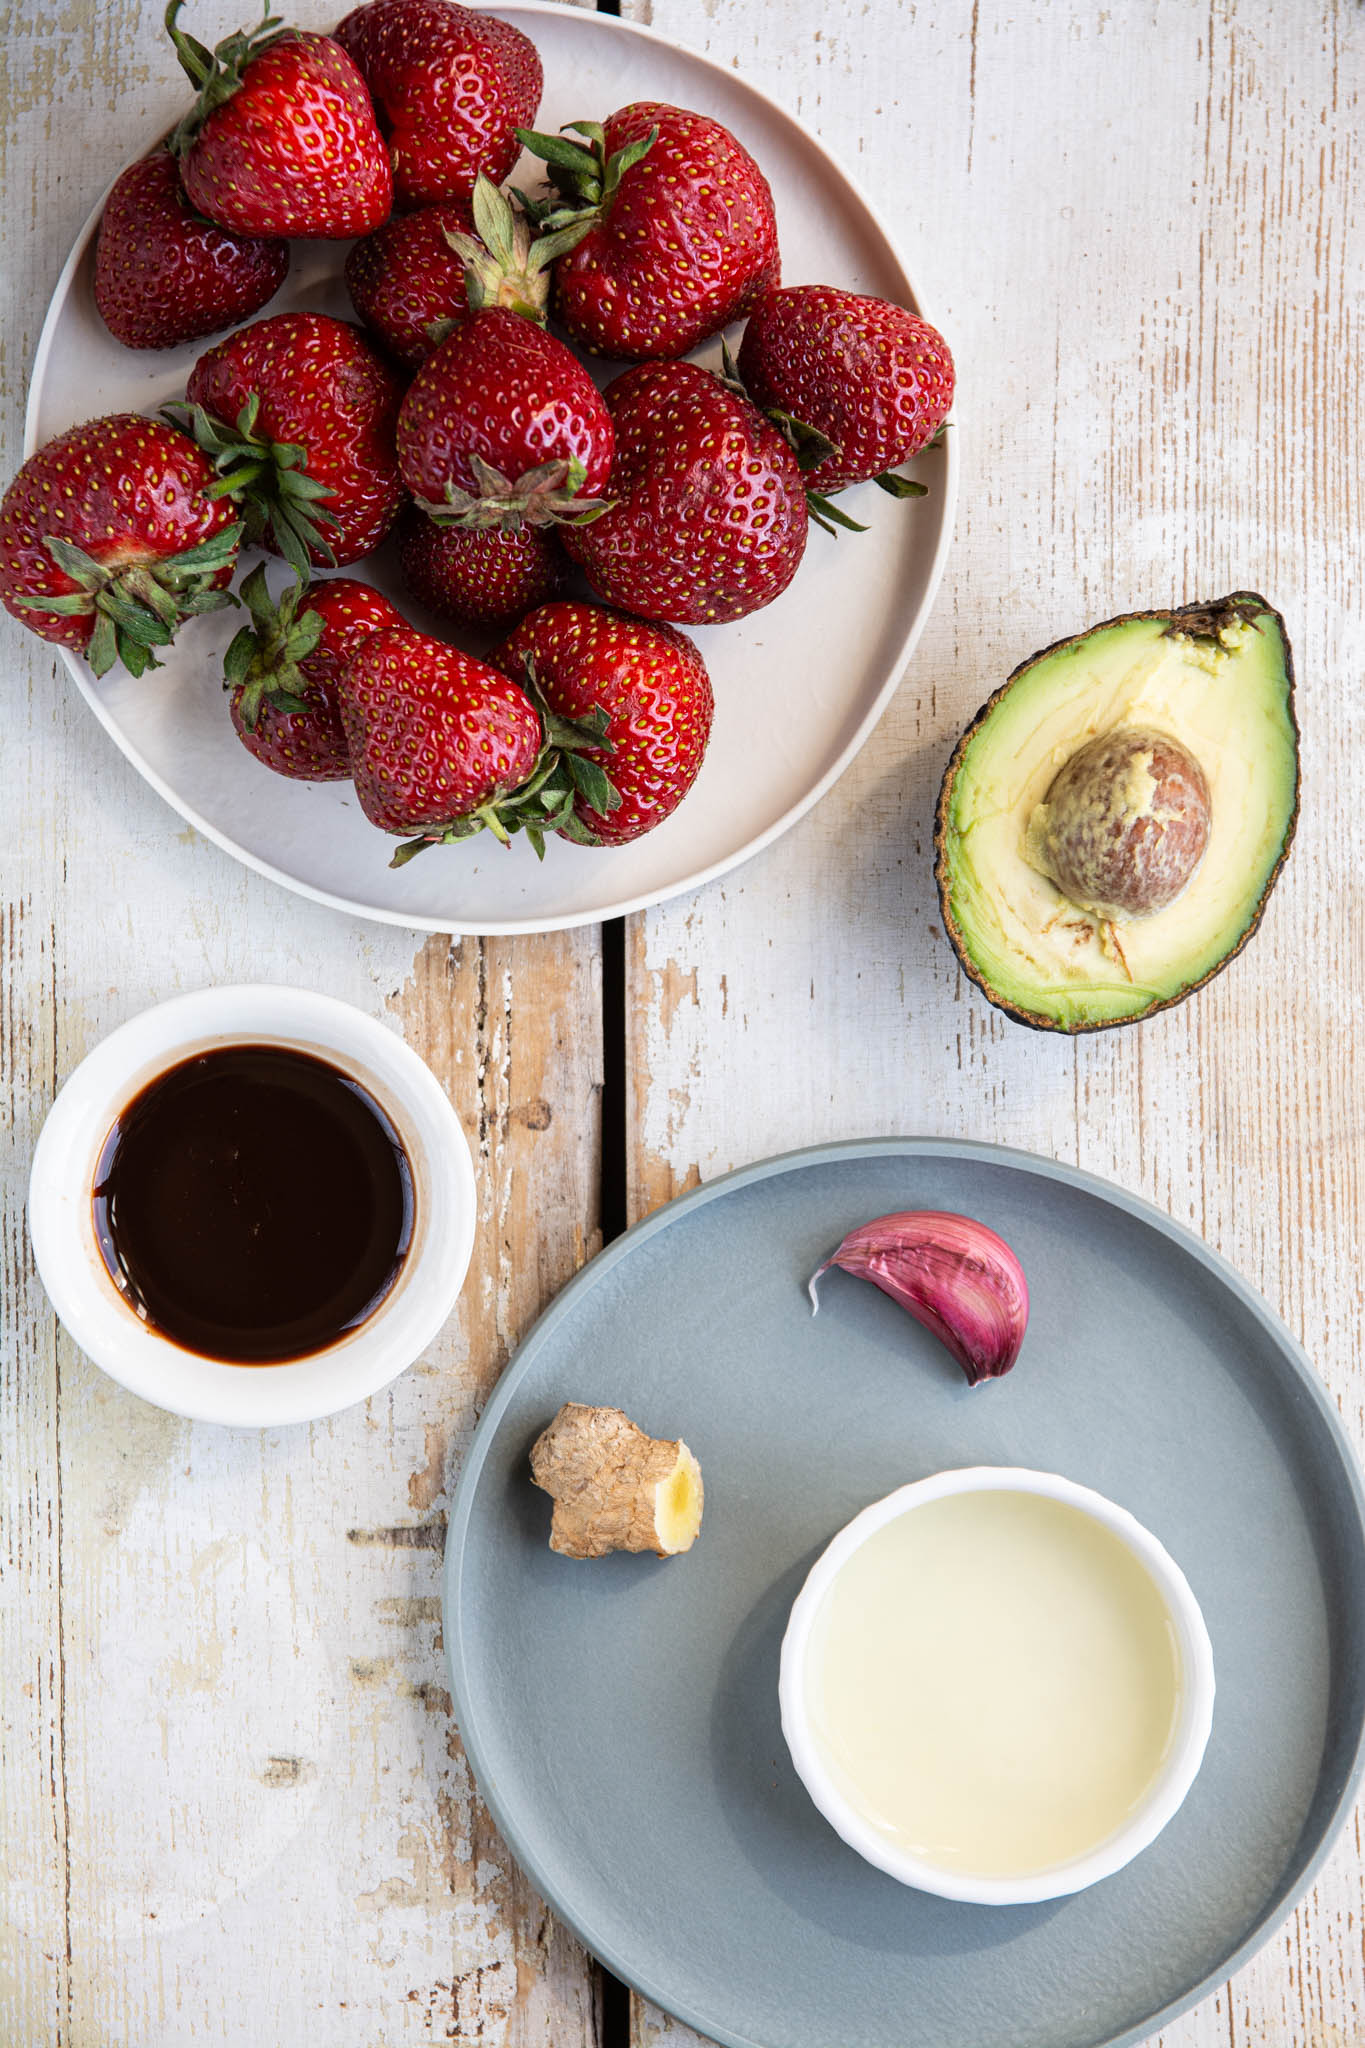 Learn how to make an easy oil-free strawberry vinaigrette dressing for salads. You'll need a blender or an immersion blender, a handful of ingredients and 10 minutes of your time.